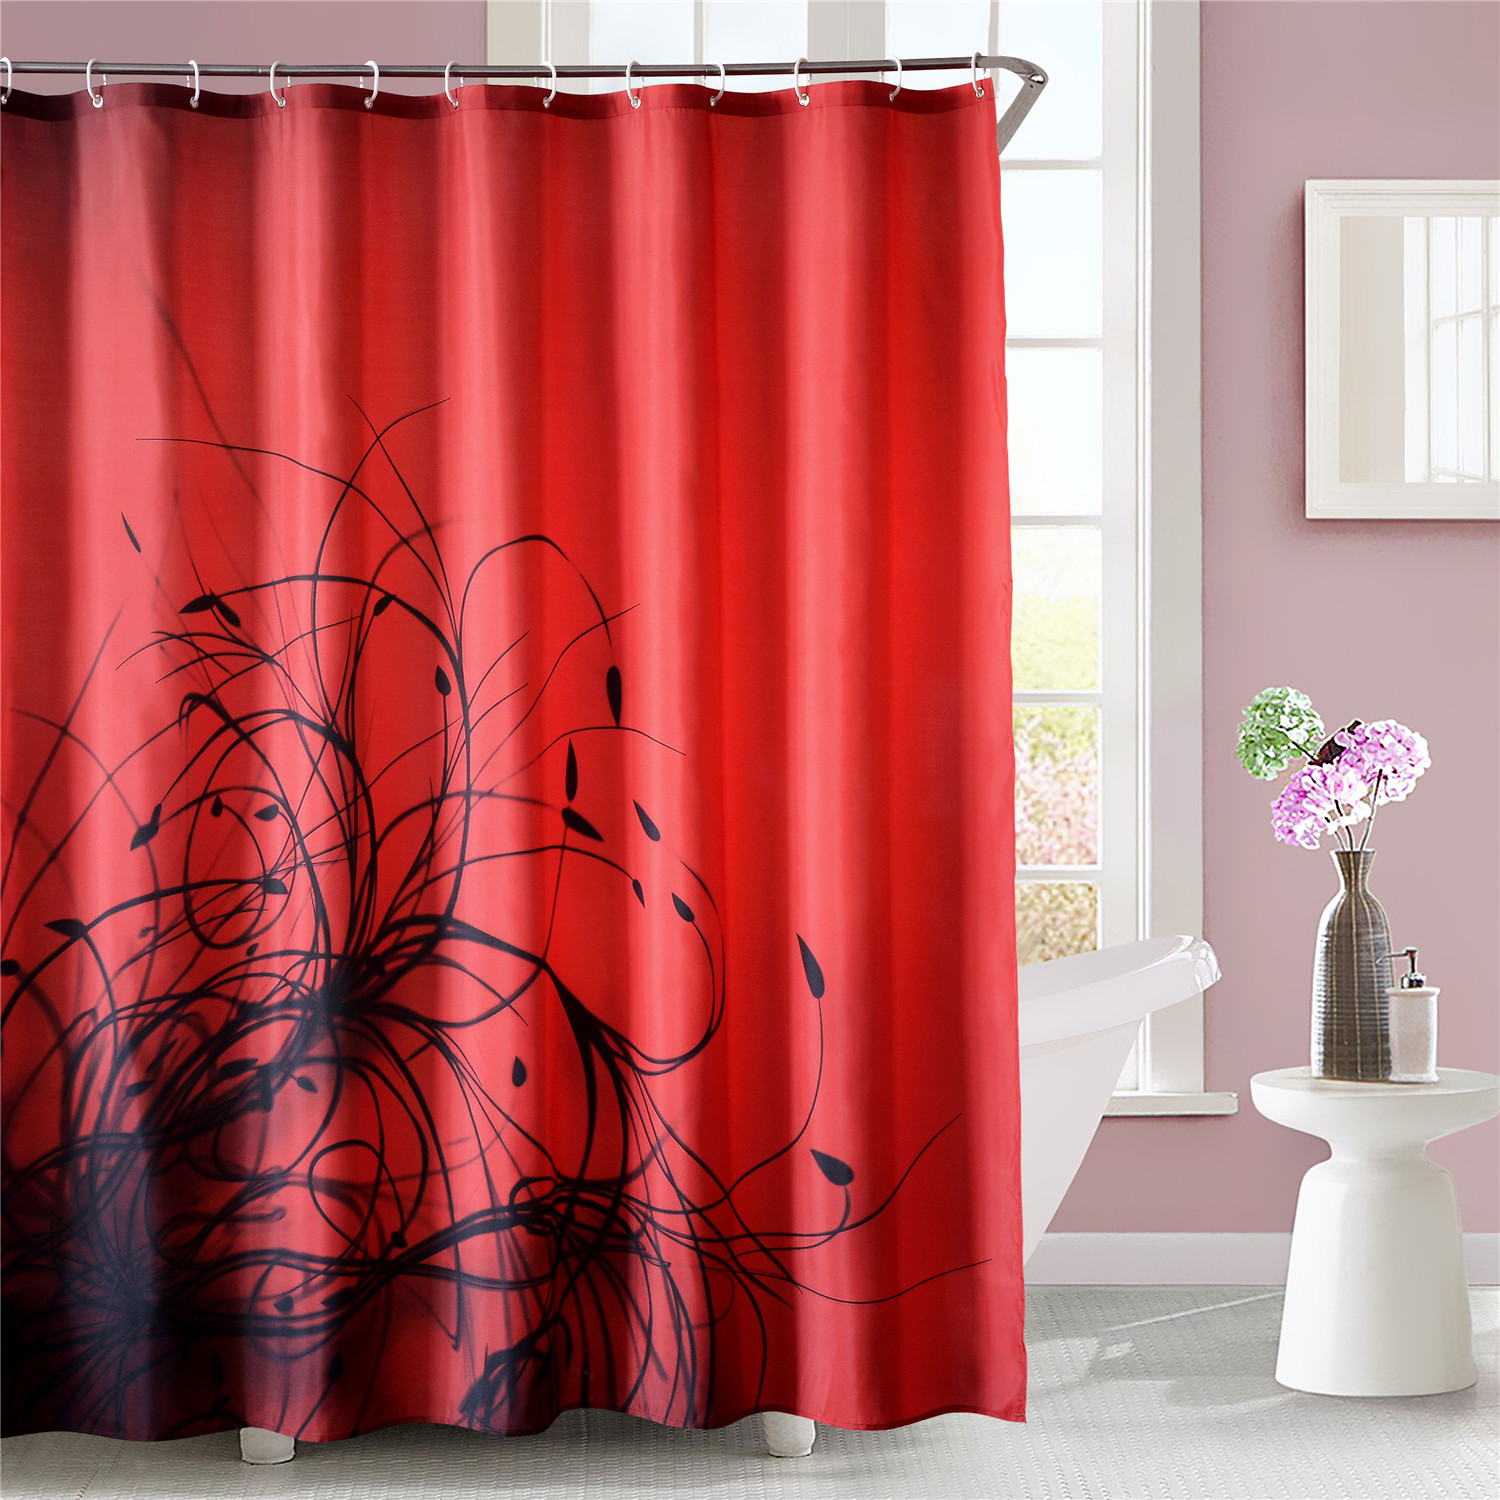 Luxury Fabric Shower Curtain Abstract Plant Floral Red Black 72x72